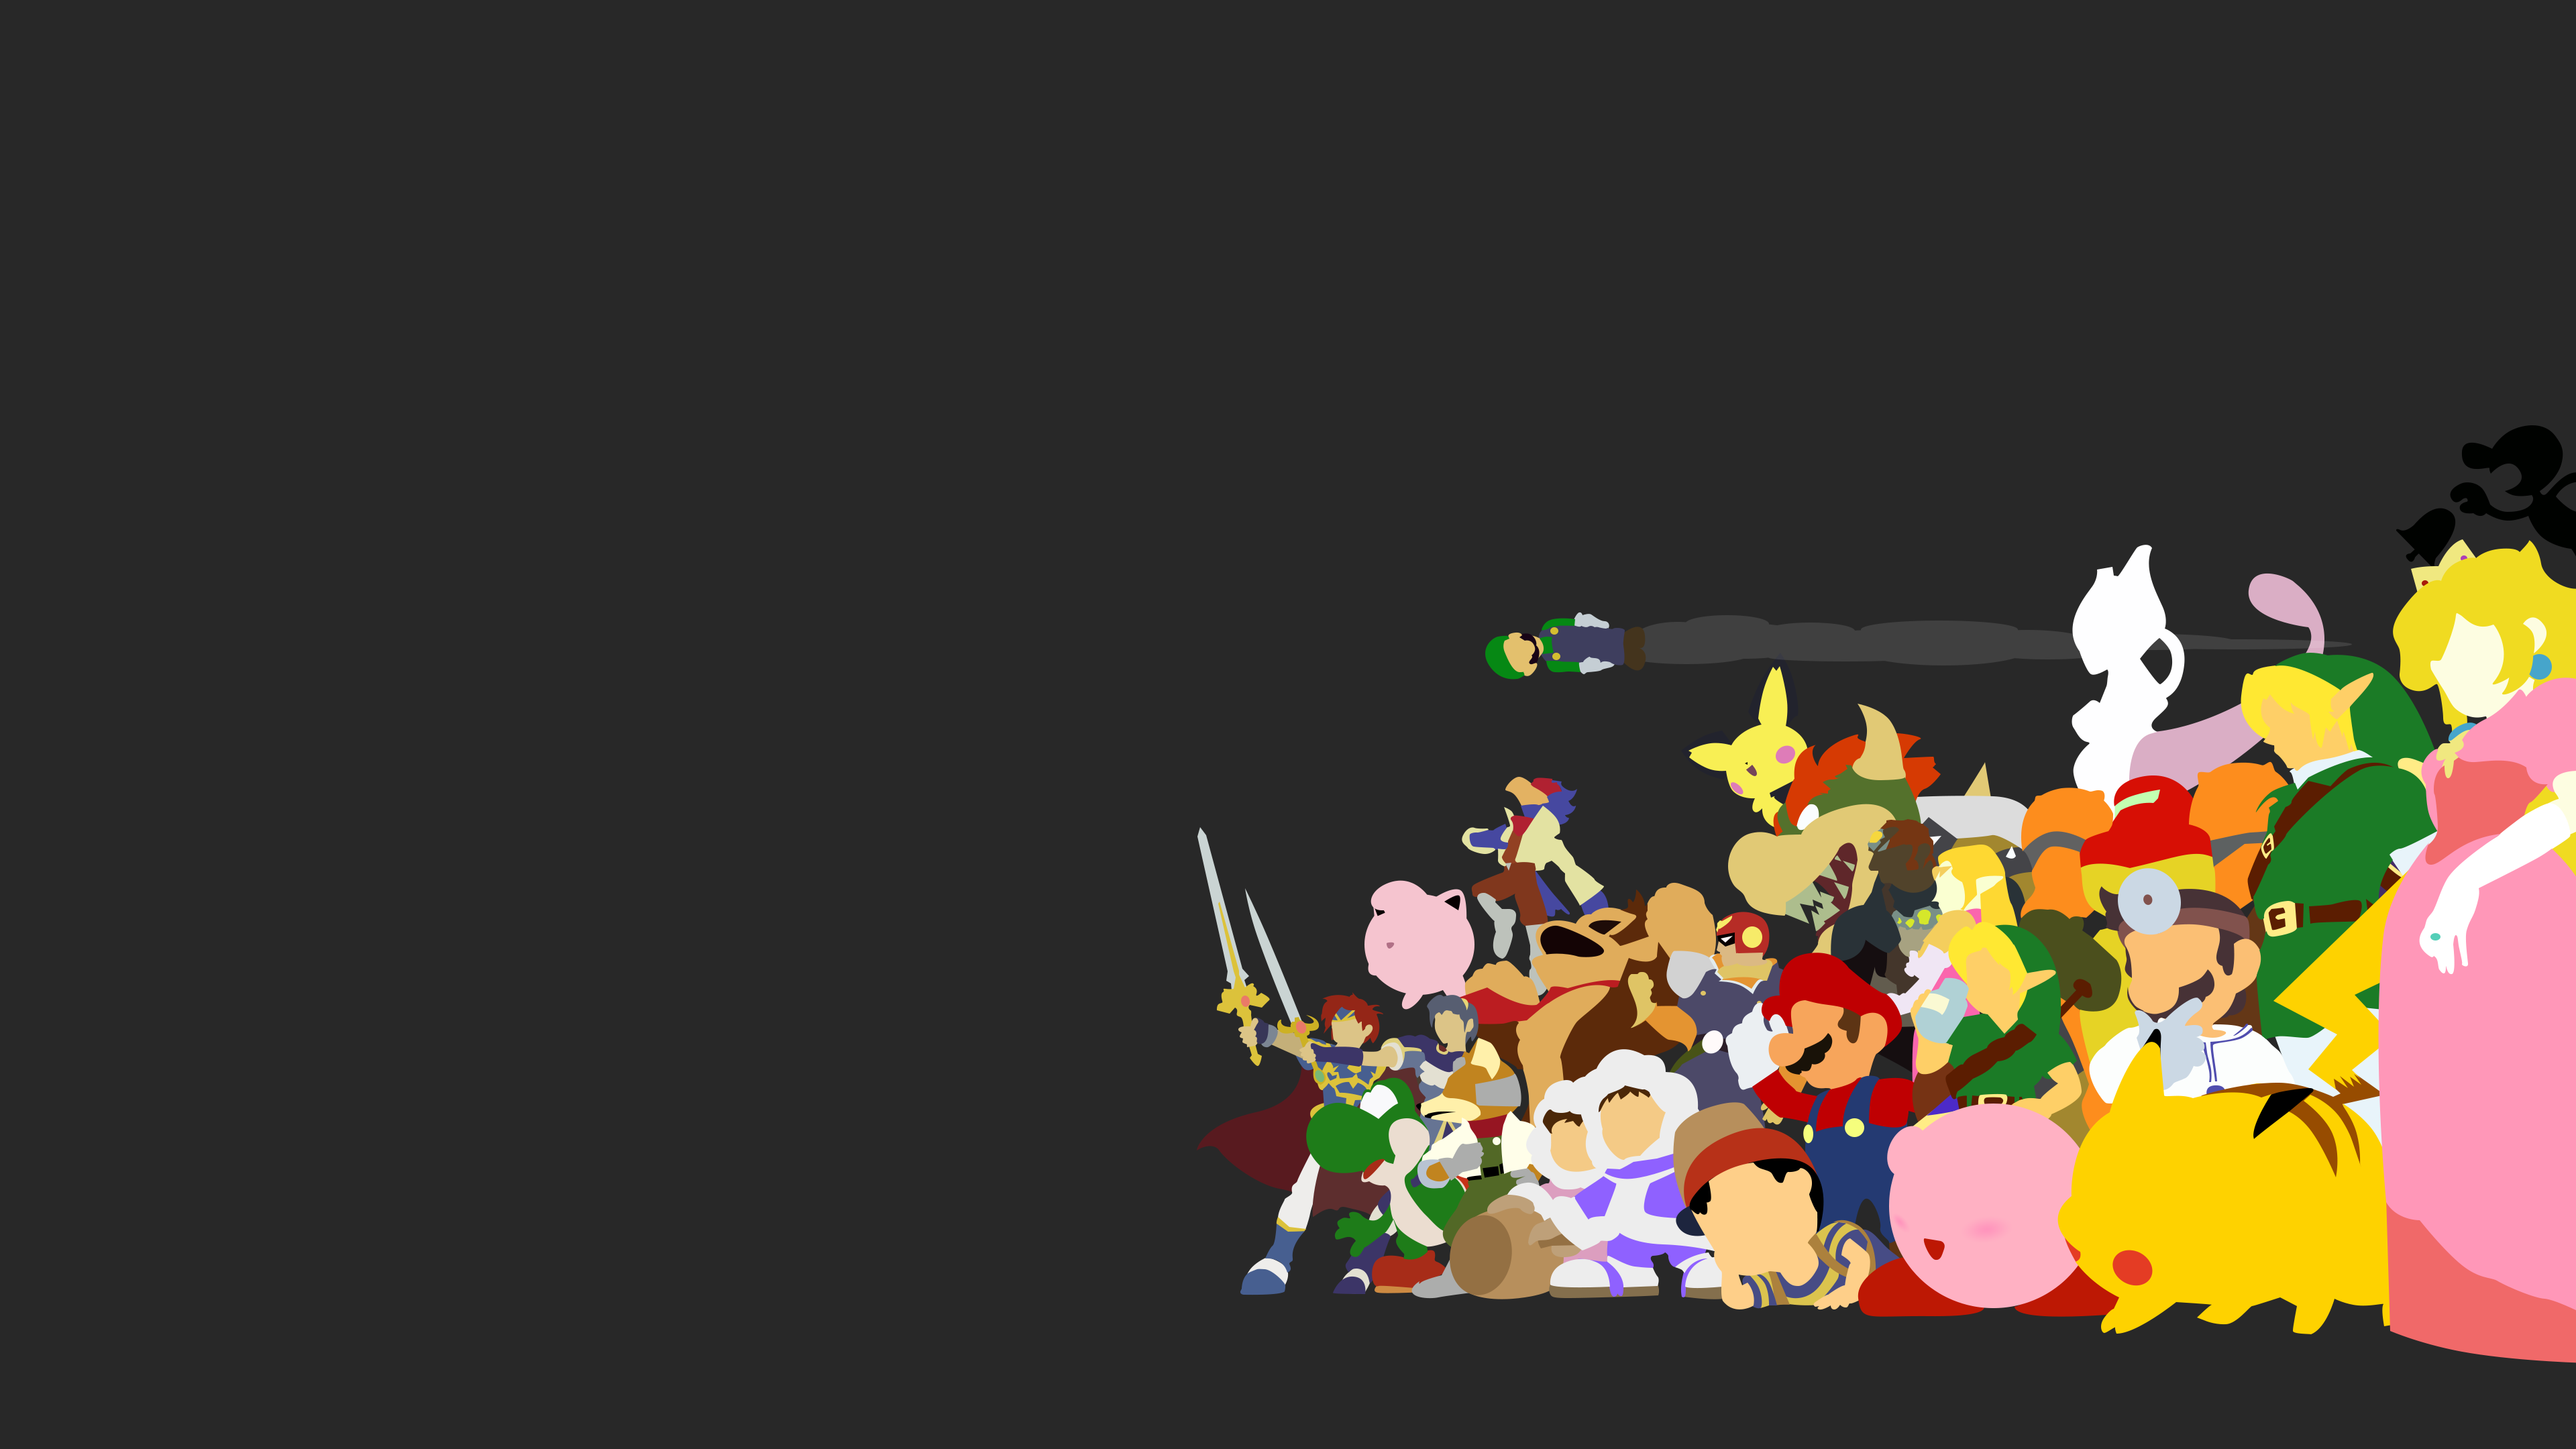 Smash Bros Melee Wallpaper